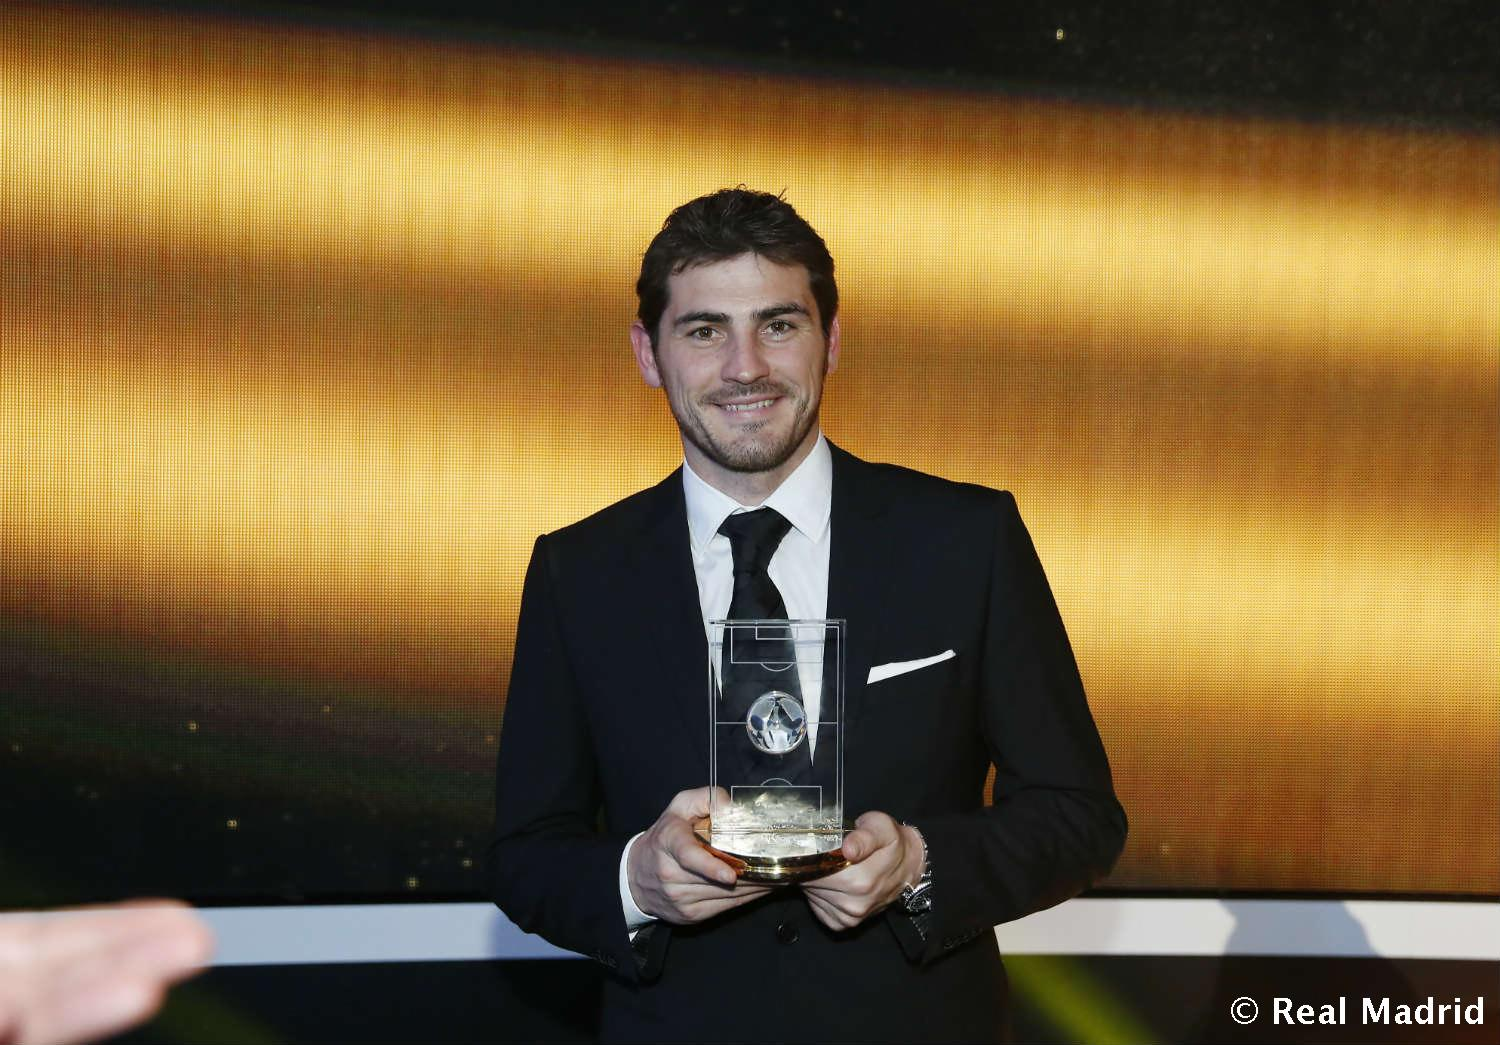 Real Madrid - Iker Casillas. FIFA/FIFPro World XI 2012 (2013) - 27-01-2014